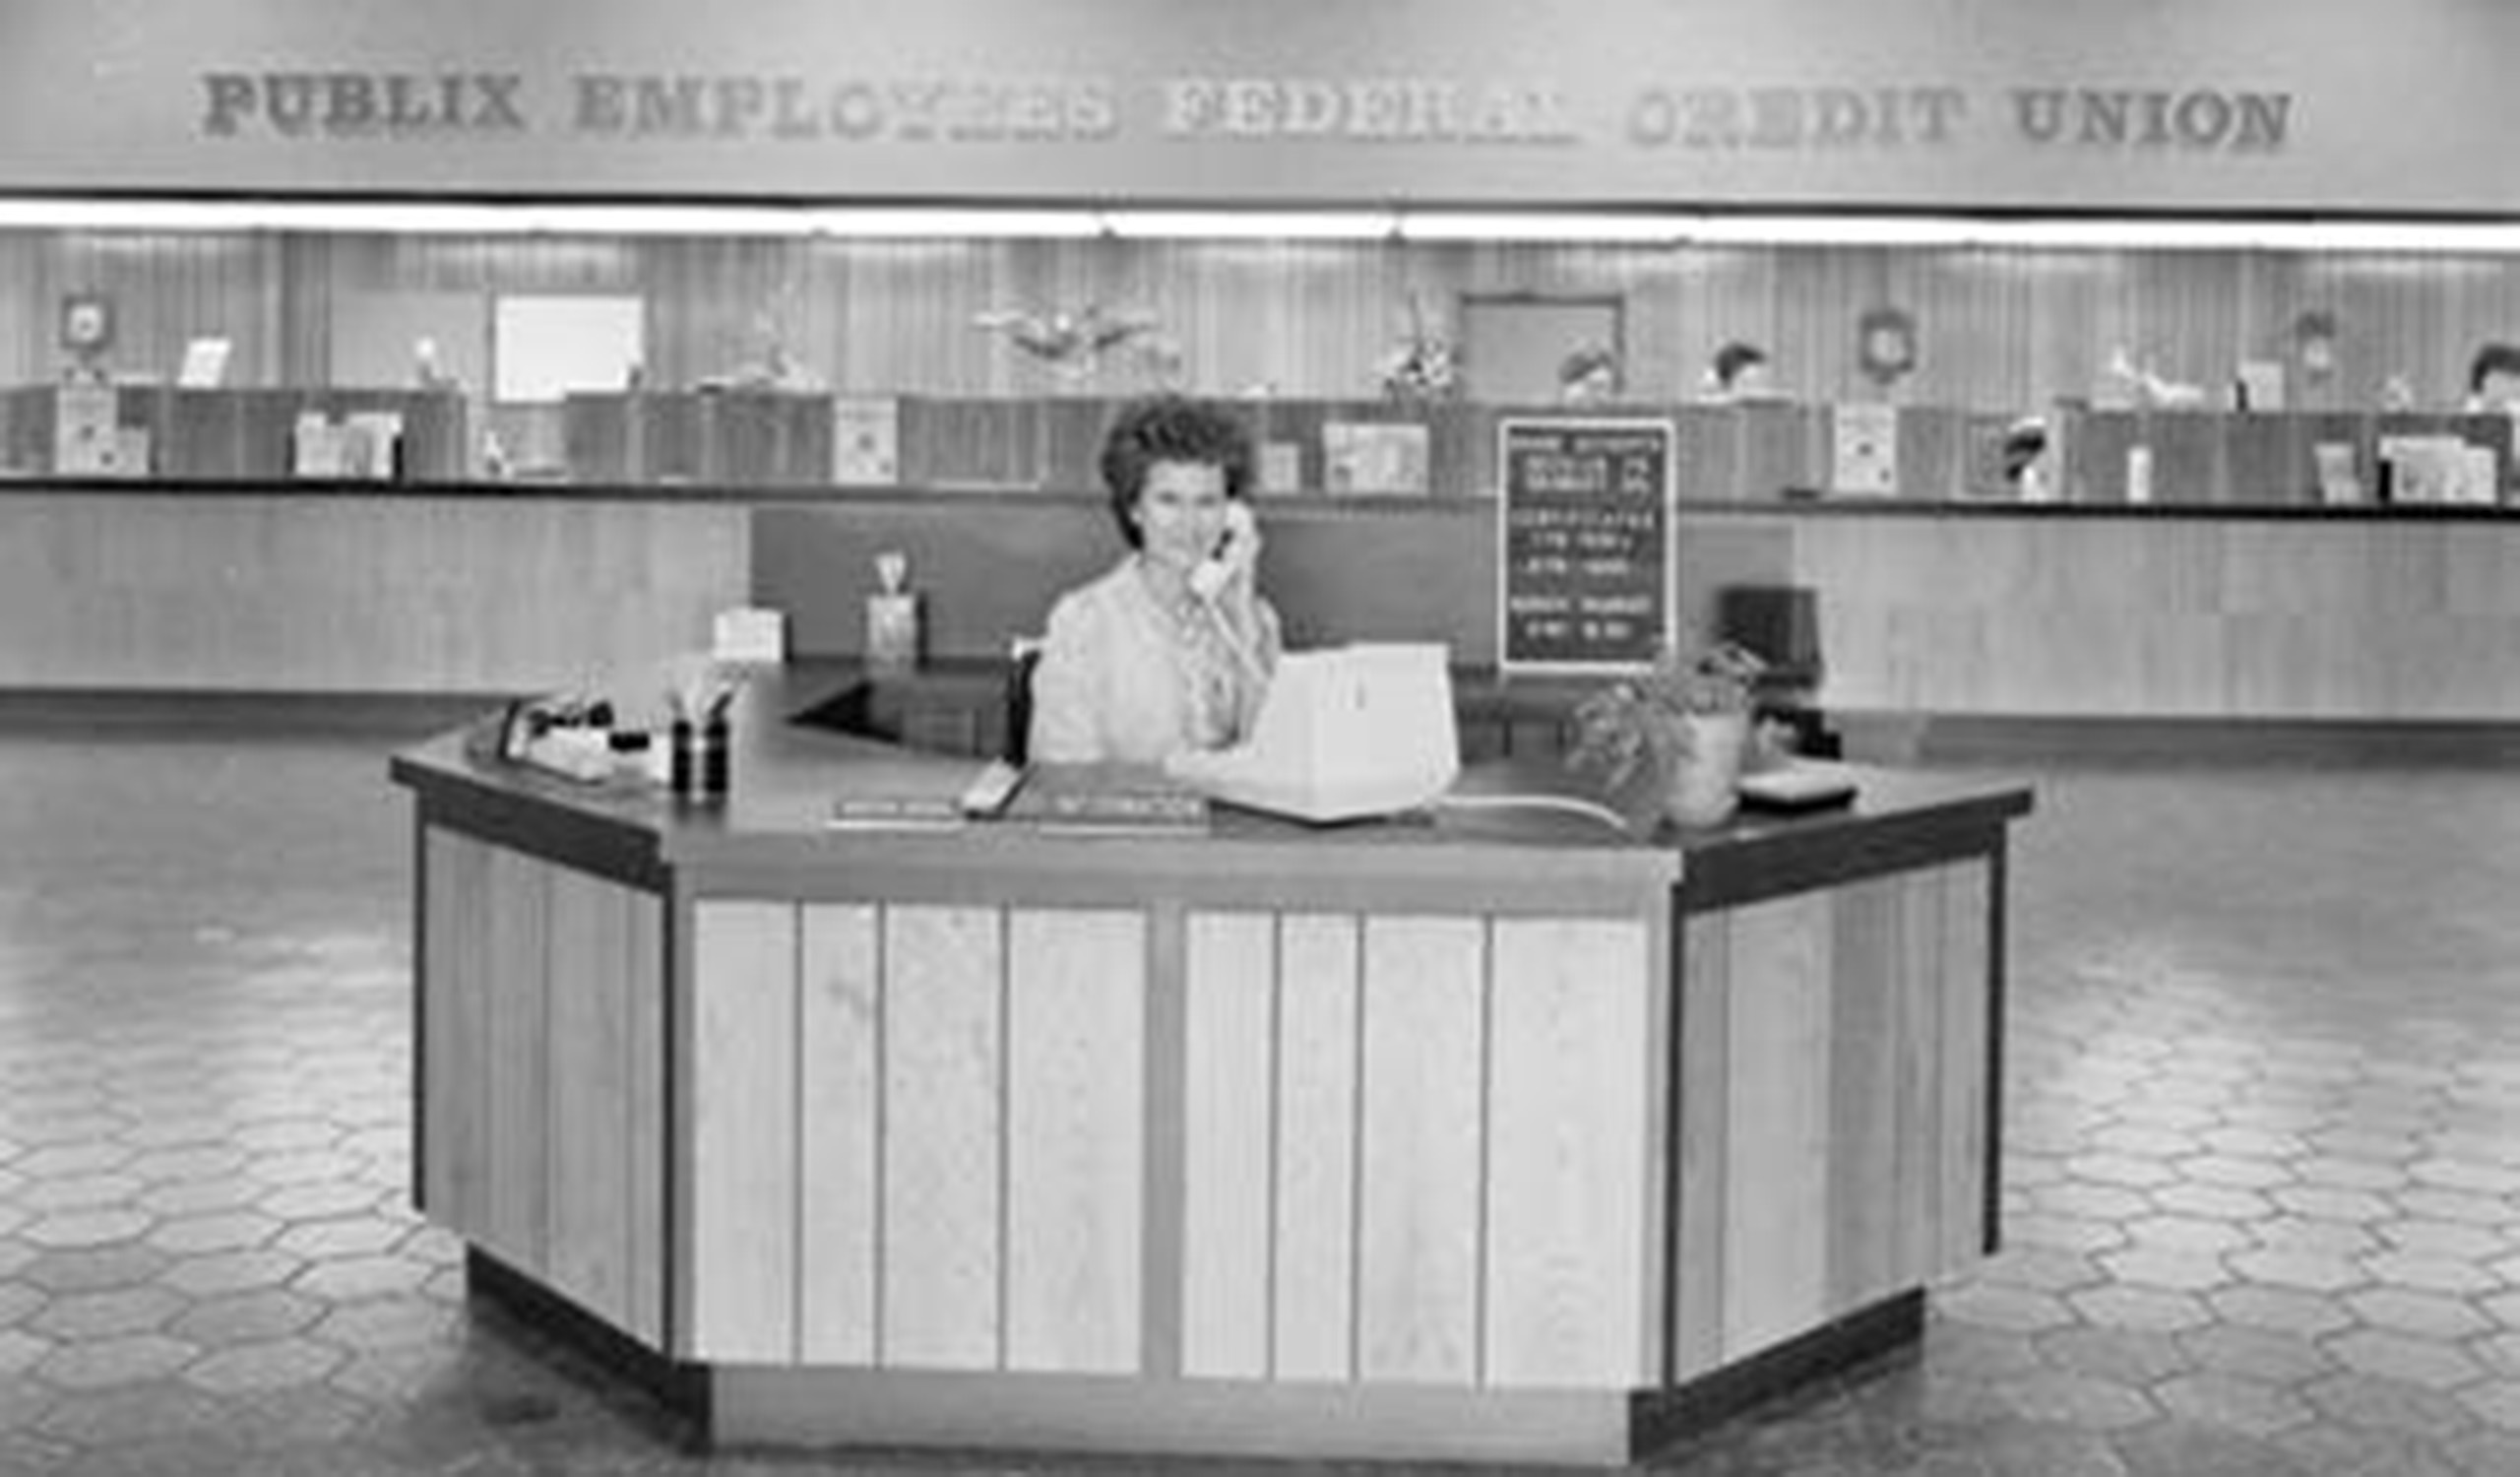 PEFCU History: A Look Back in Time